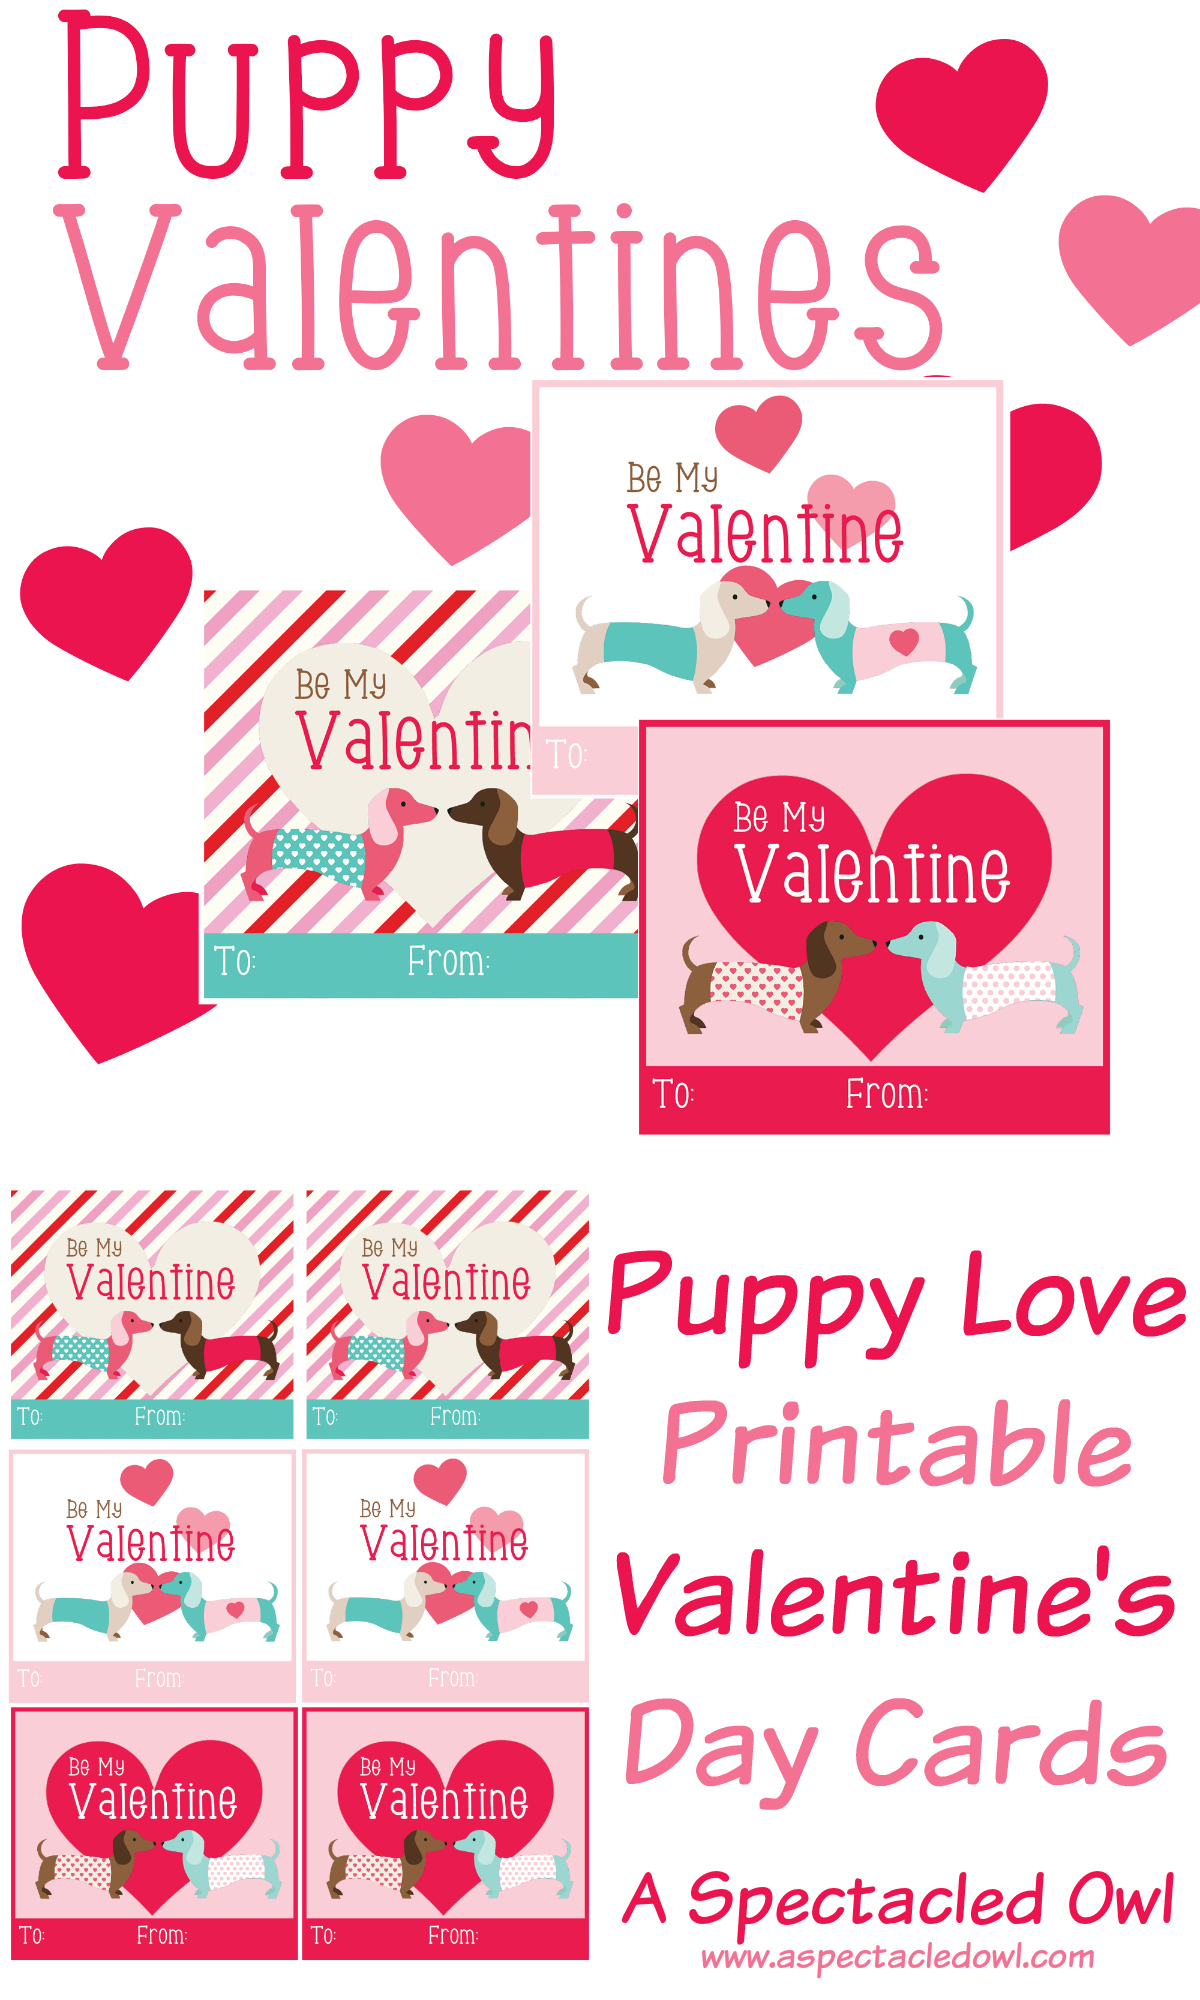 Puppy Love Printable Valentine's Day Cards